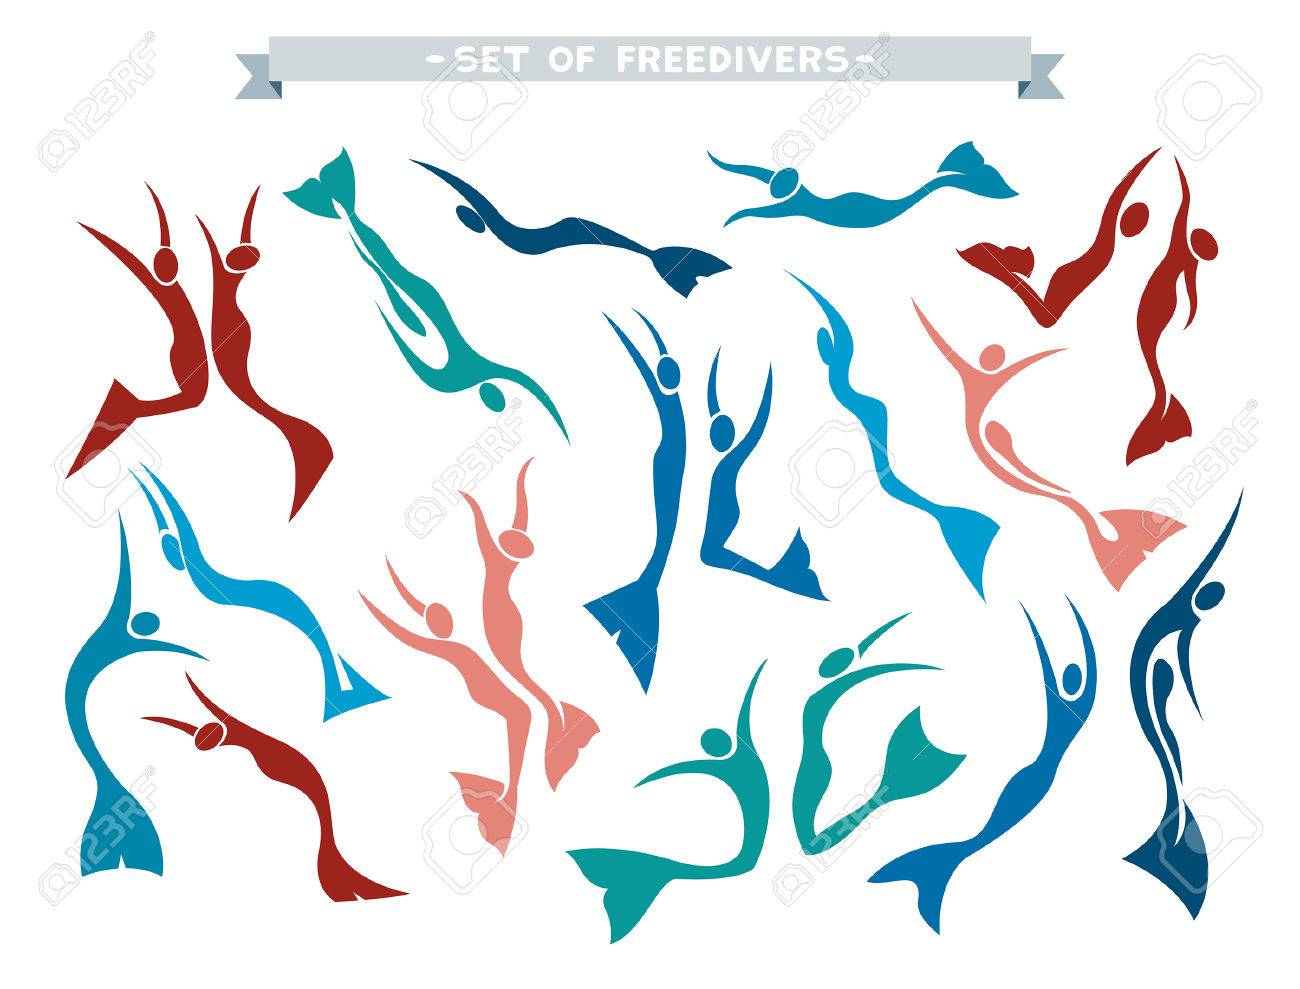 Vector collection with isolated silhouette of freedivers in monofin on a white background. Set with different pose of free divers. - 52916884